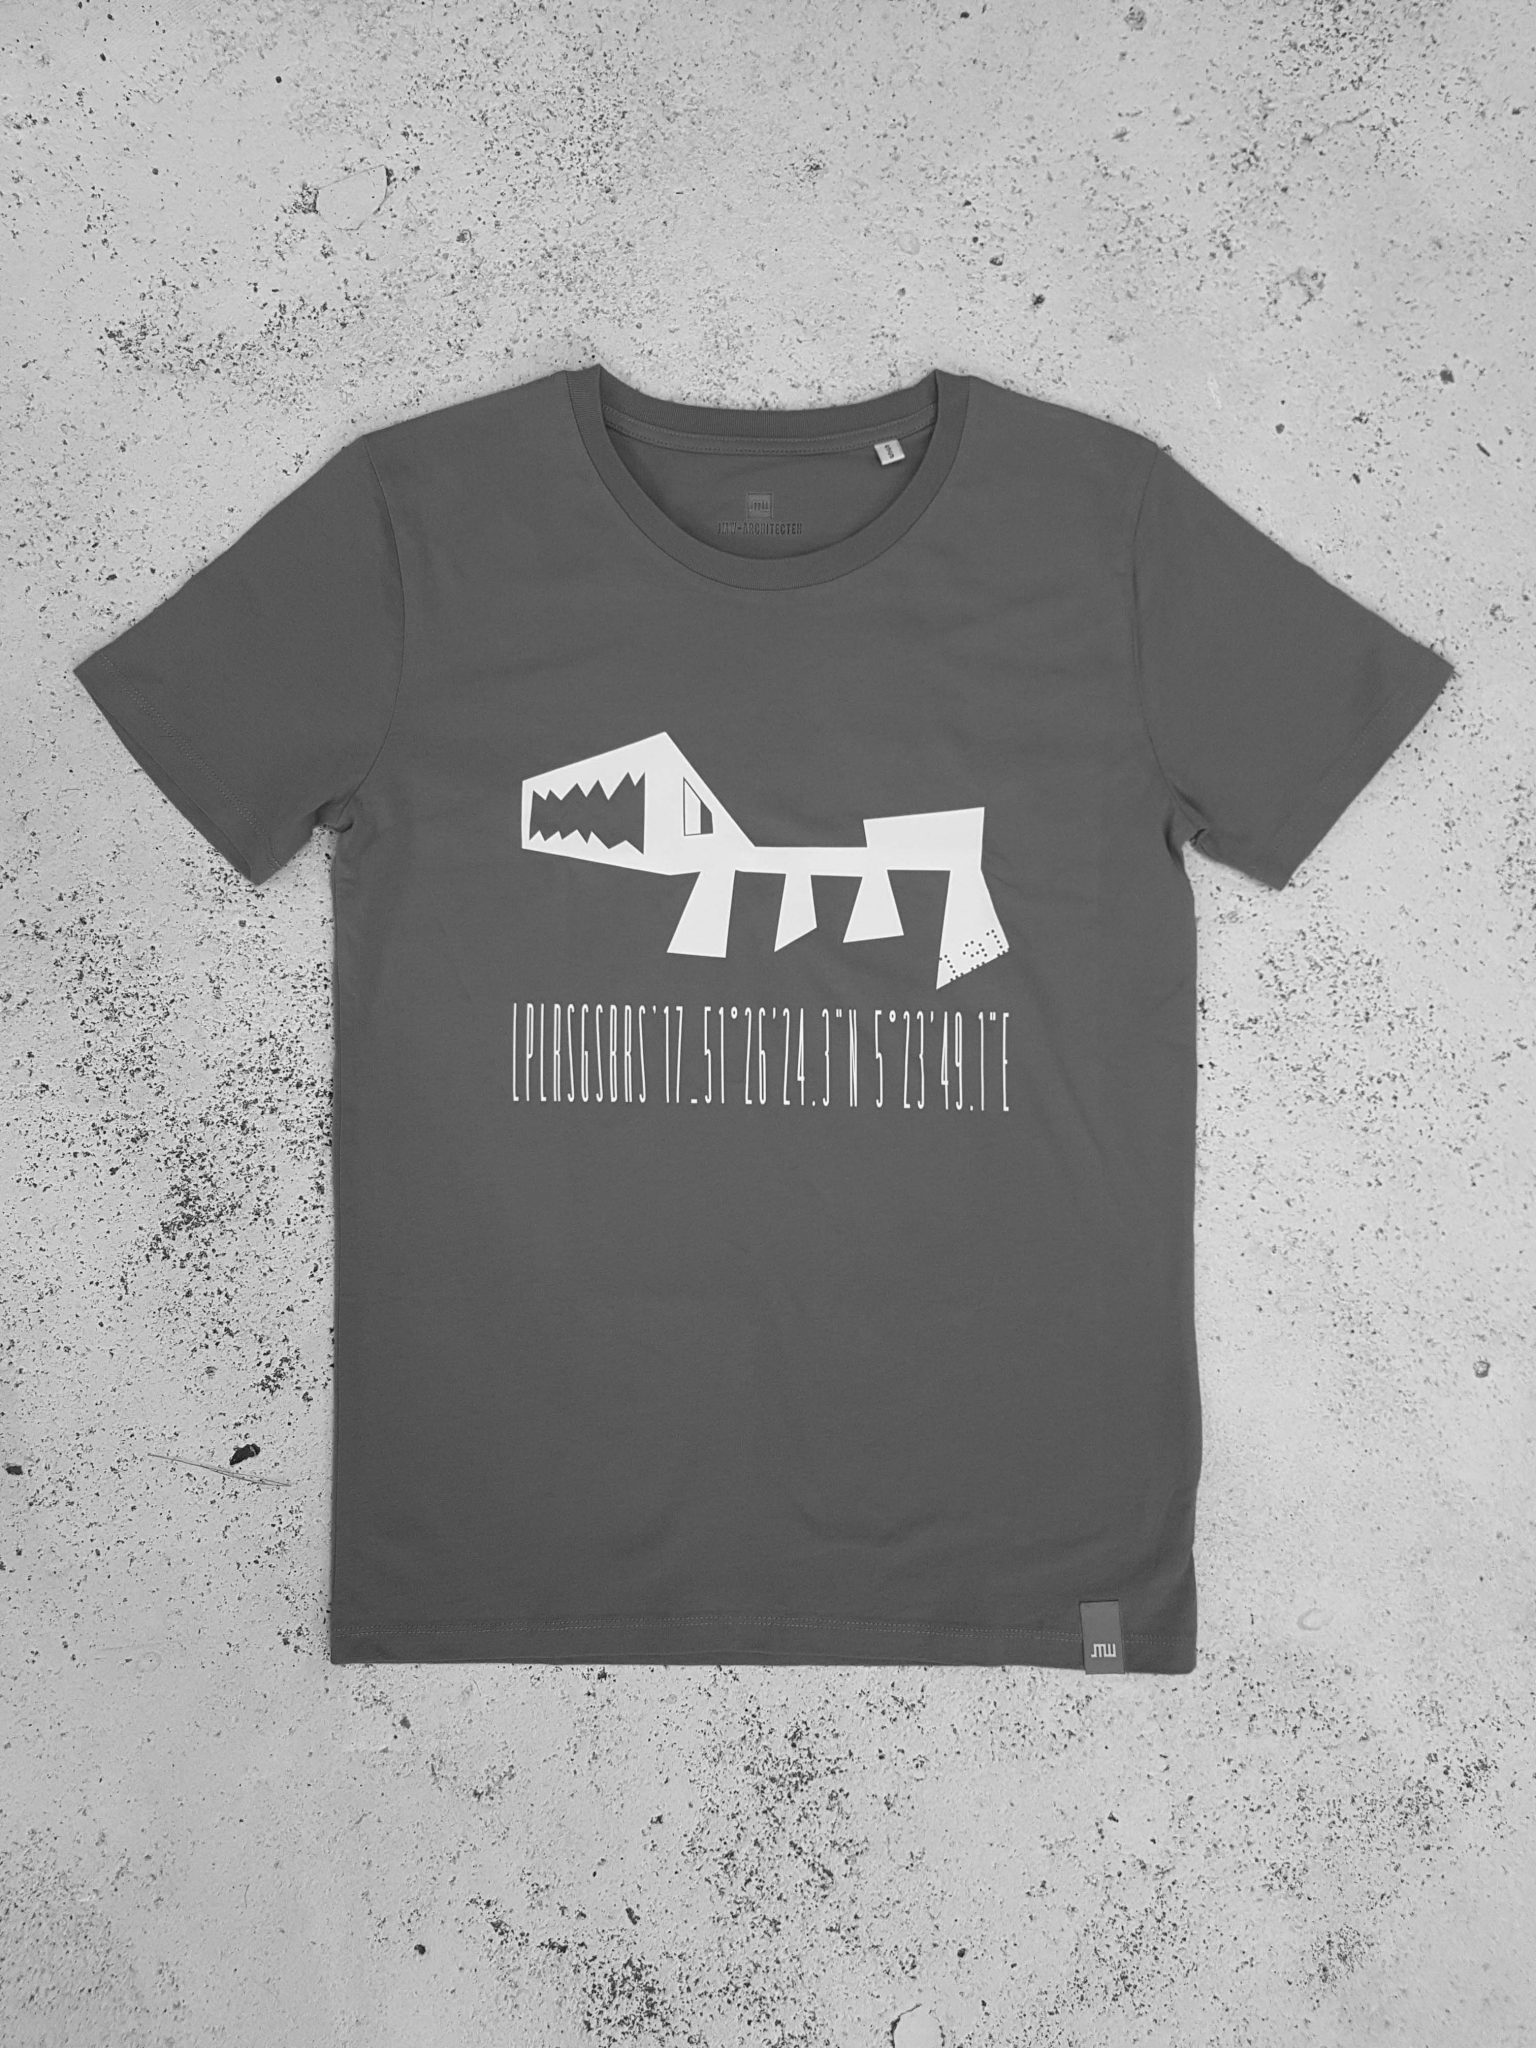 t shirt jmw architecten project 191 shop webshop